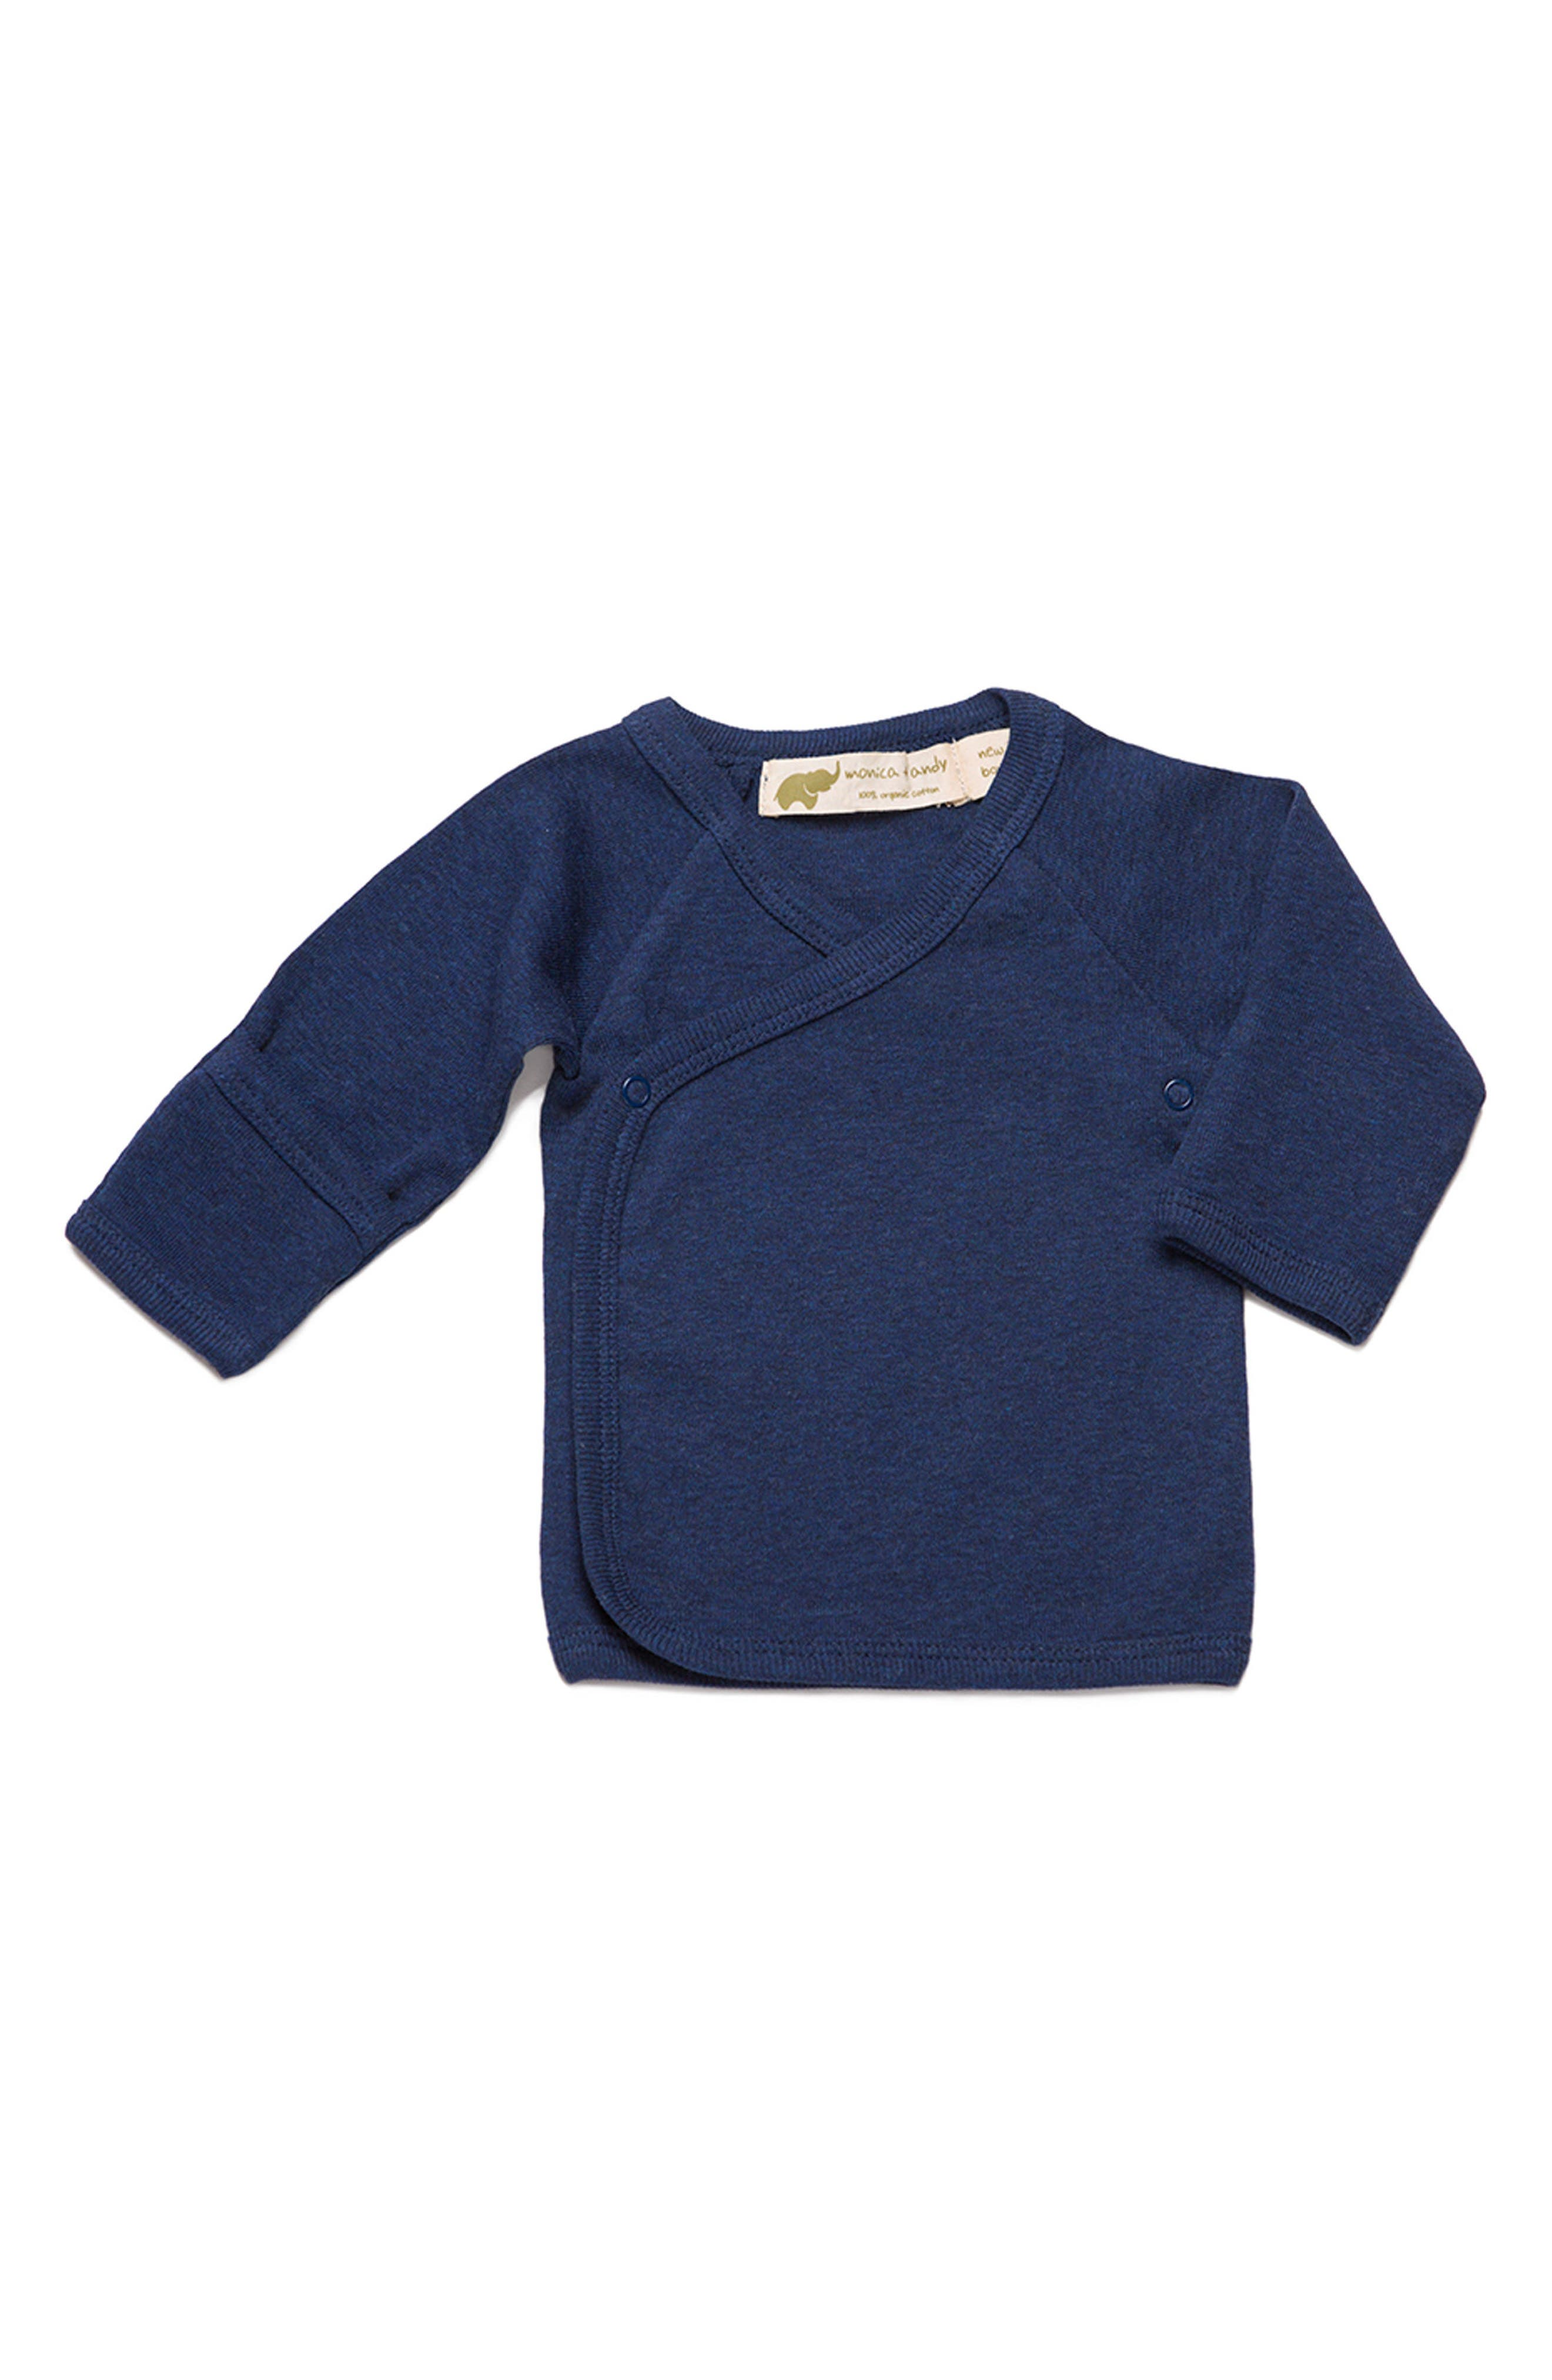 Hello Baby Organic Cotton Top,                         Main,                         color, Navy Blue  Heather